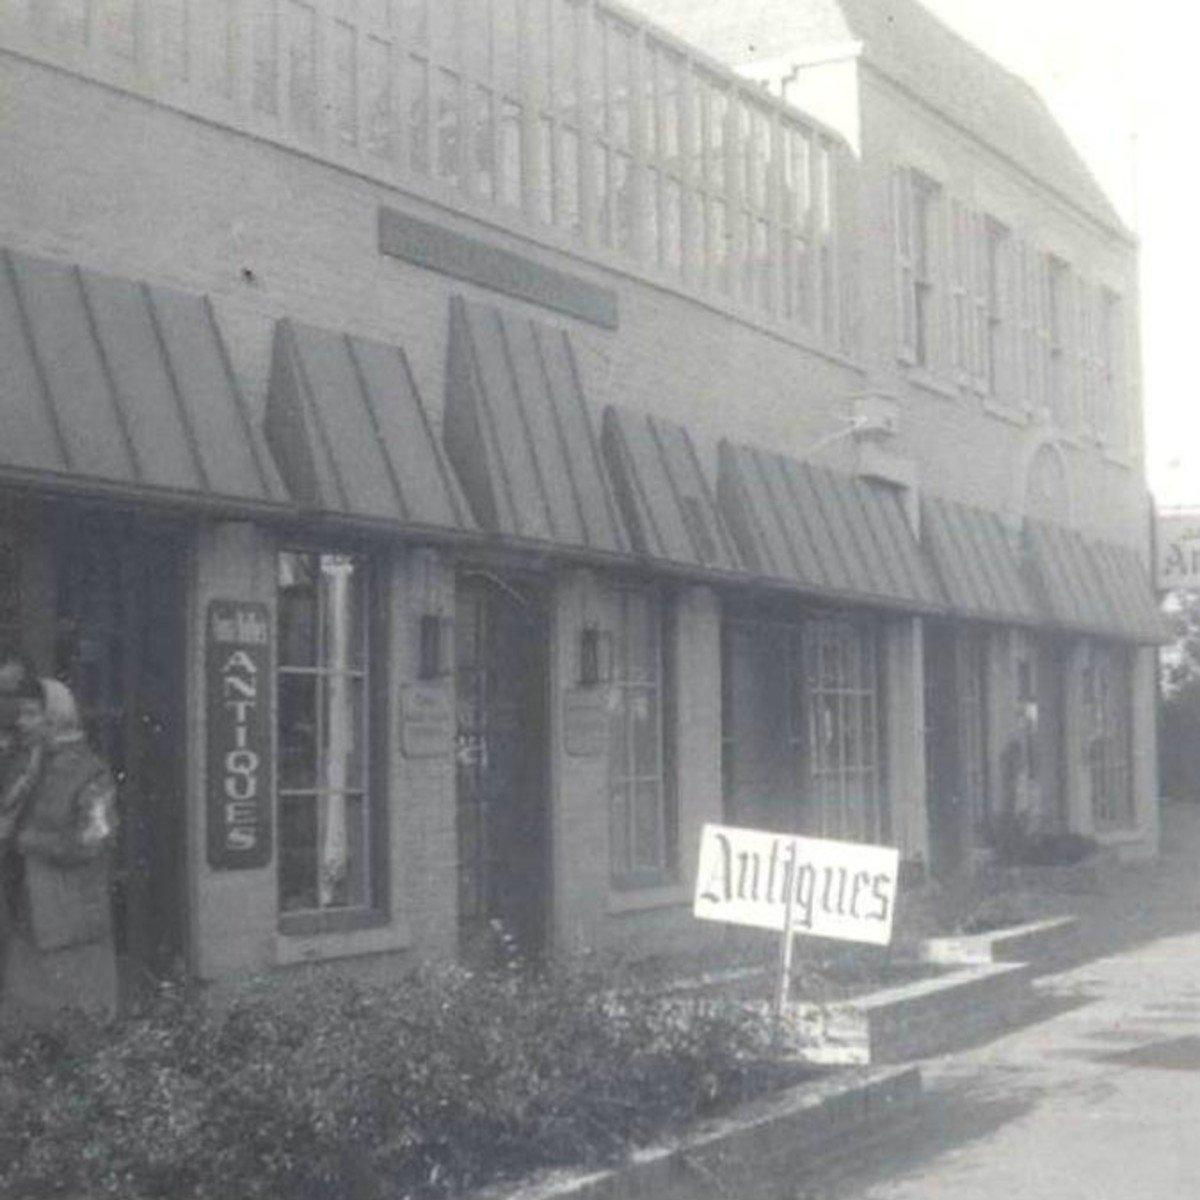 McKinney Avenue in Dallas historical photo